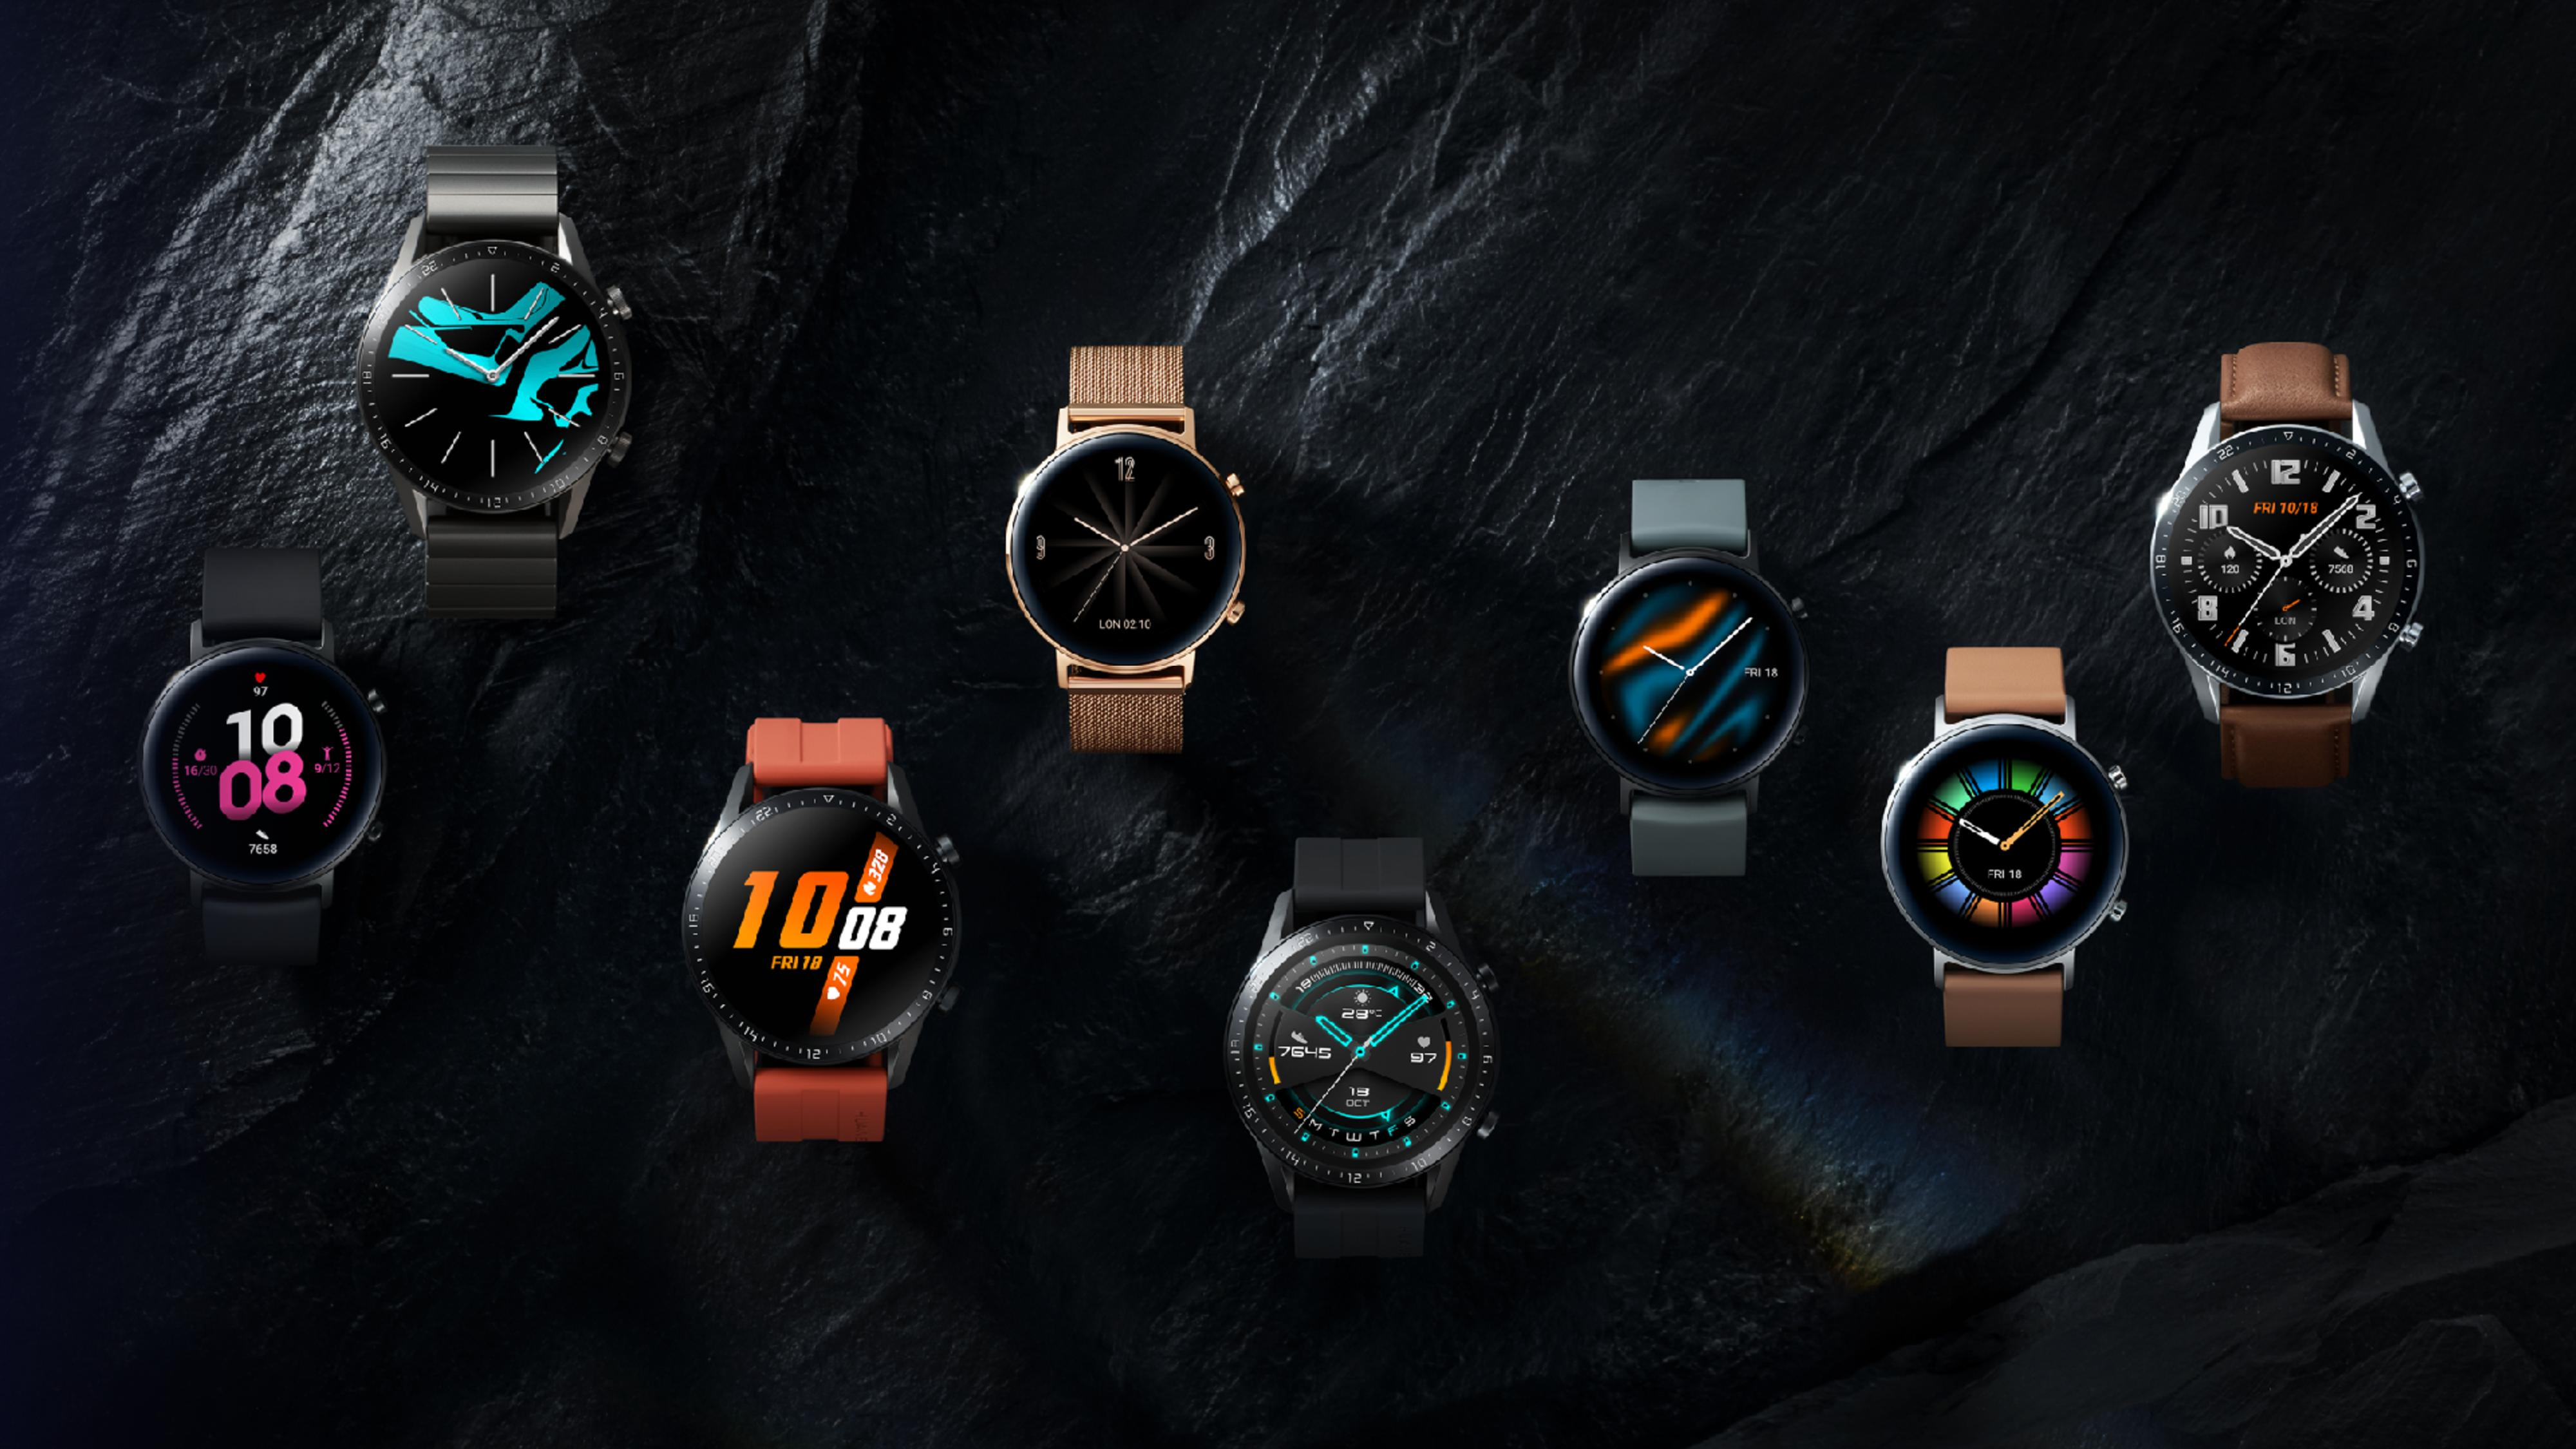 Huawei's Watch GT 2 is now available with great battery life, new workout courses, calls and music playback - Alvinology